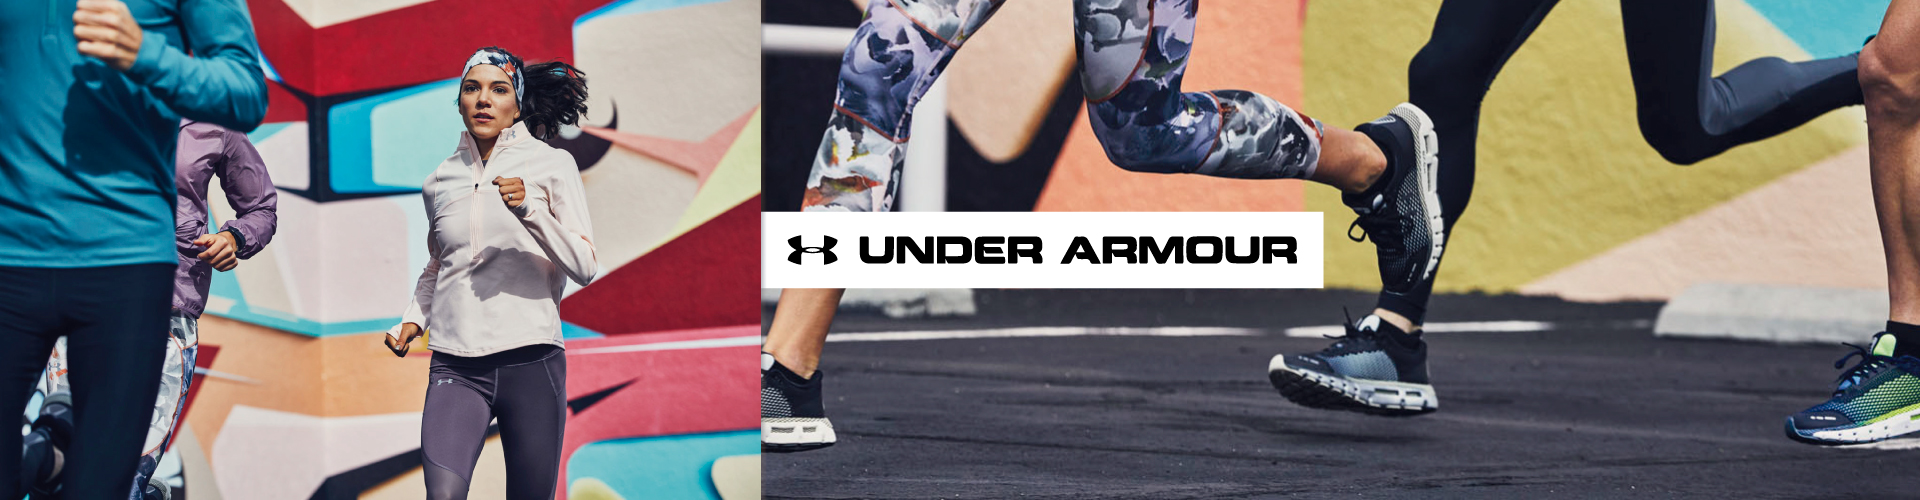 under armour productos